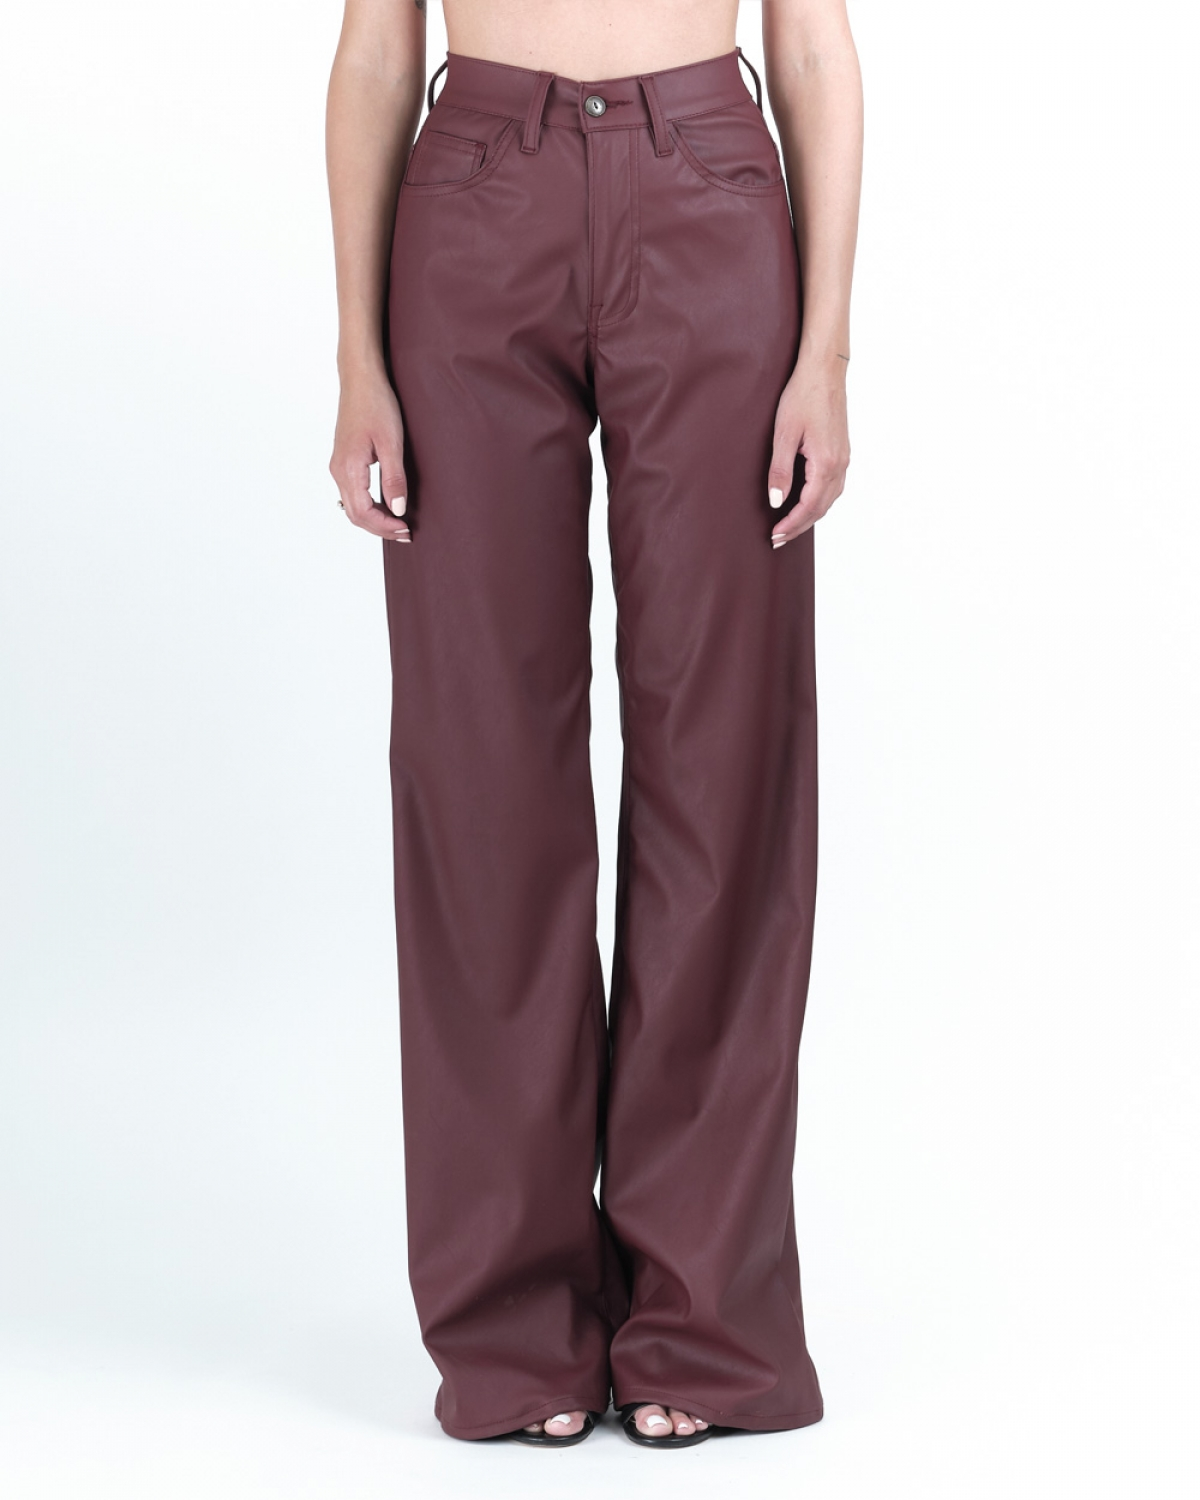 Marissa Bordeaux Faux-Leather Trouser